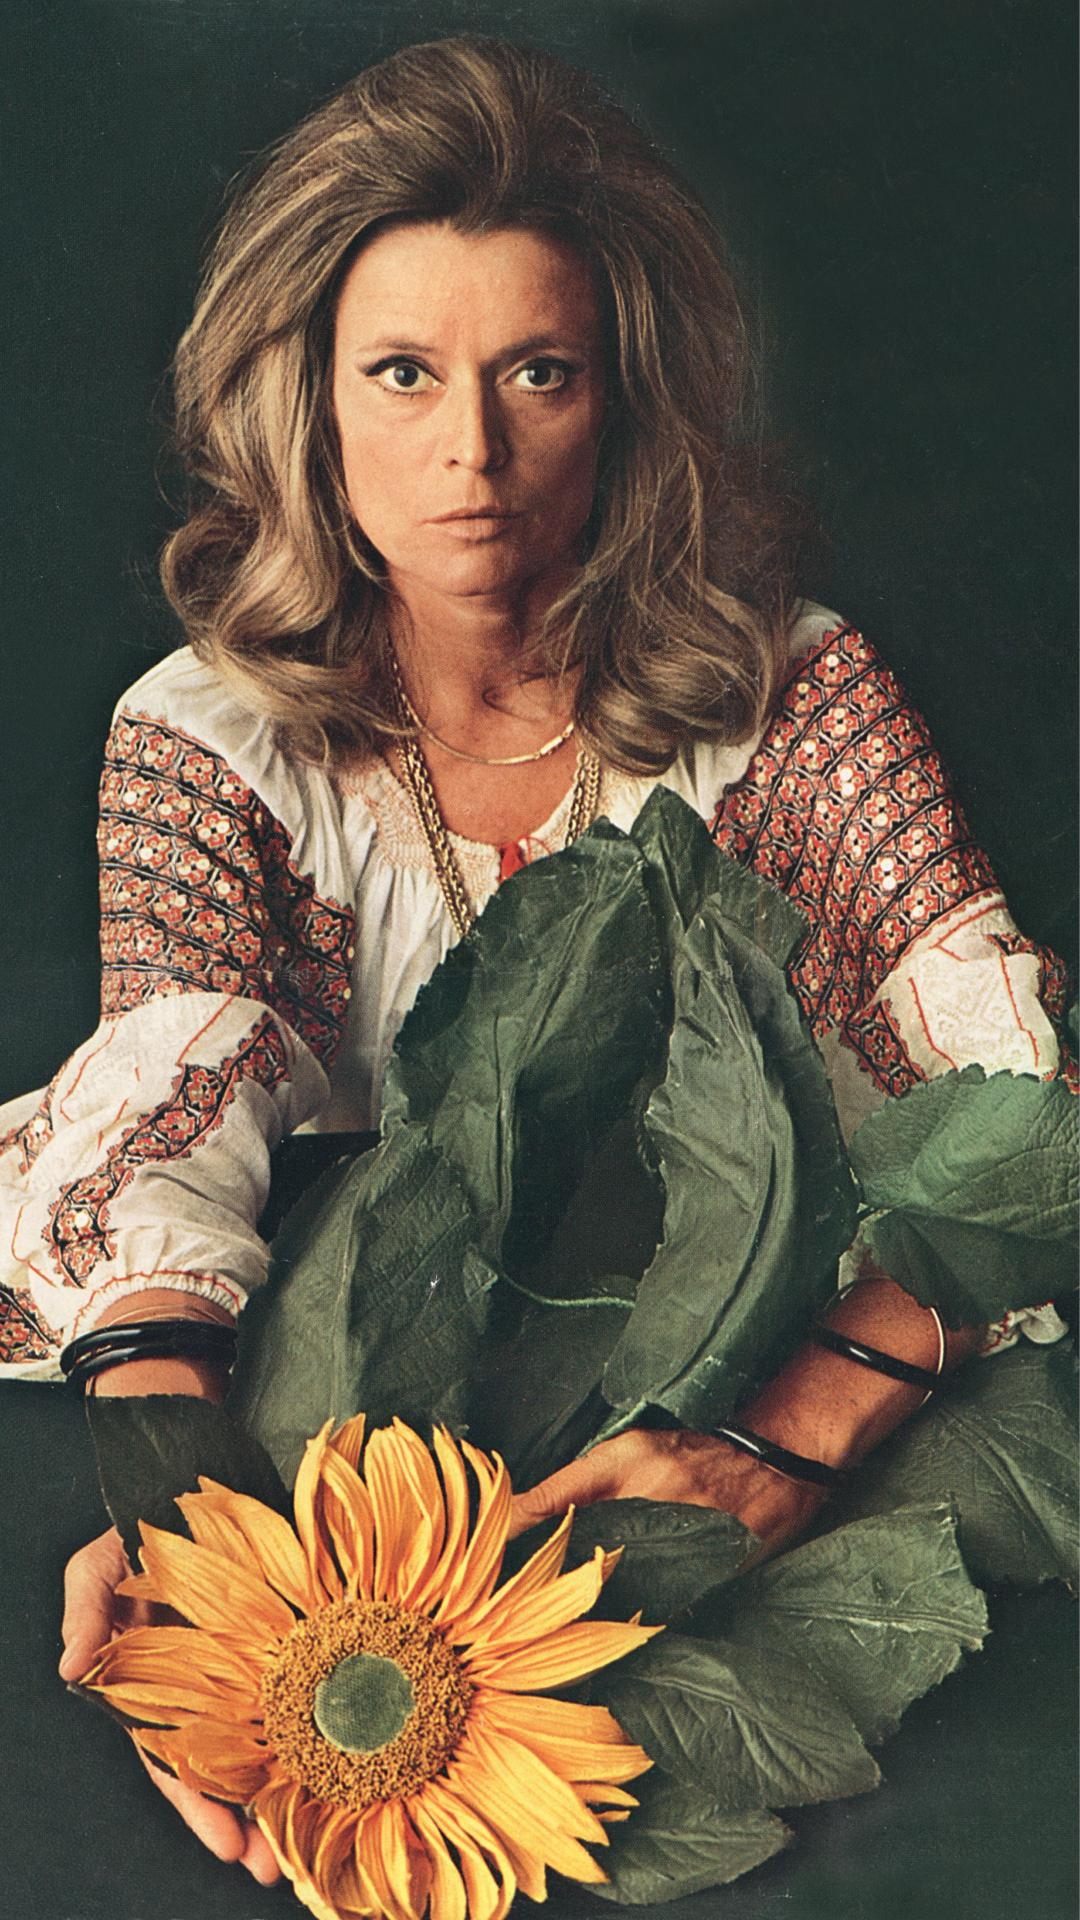 Famous interior designers - Famous female furniture designers - Gabriella Crespi by Oliviero Toscani 1970 - italian female designers - women empowerment famous interior designers Leading Ladies of Design: 20 Famous Interior Designers & Architects Gabriella Crespi Portait by Oliviero Toscani  1970